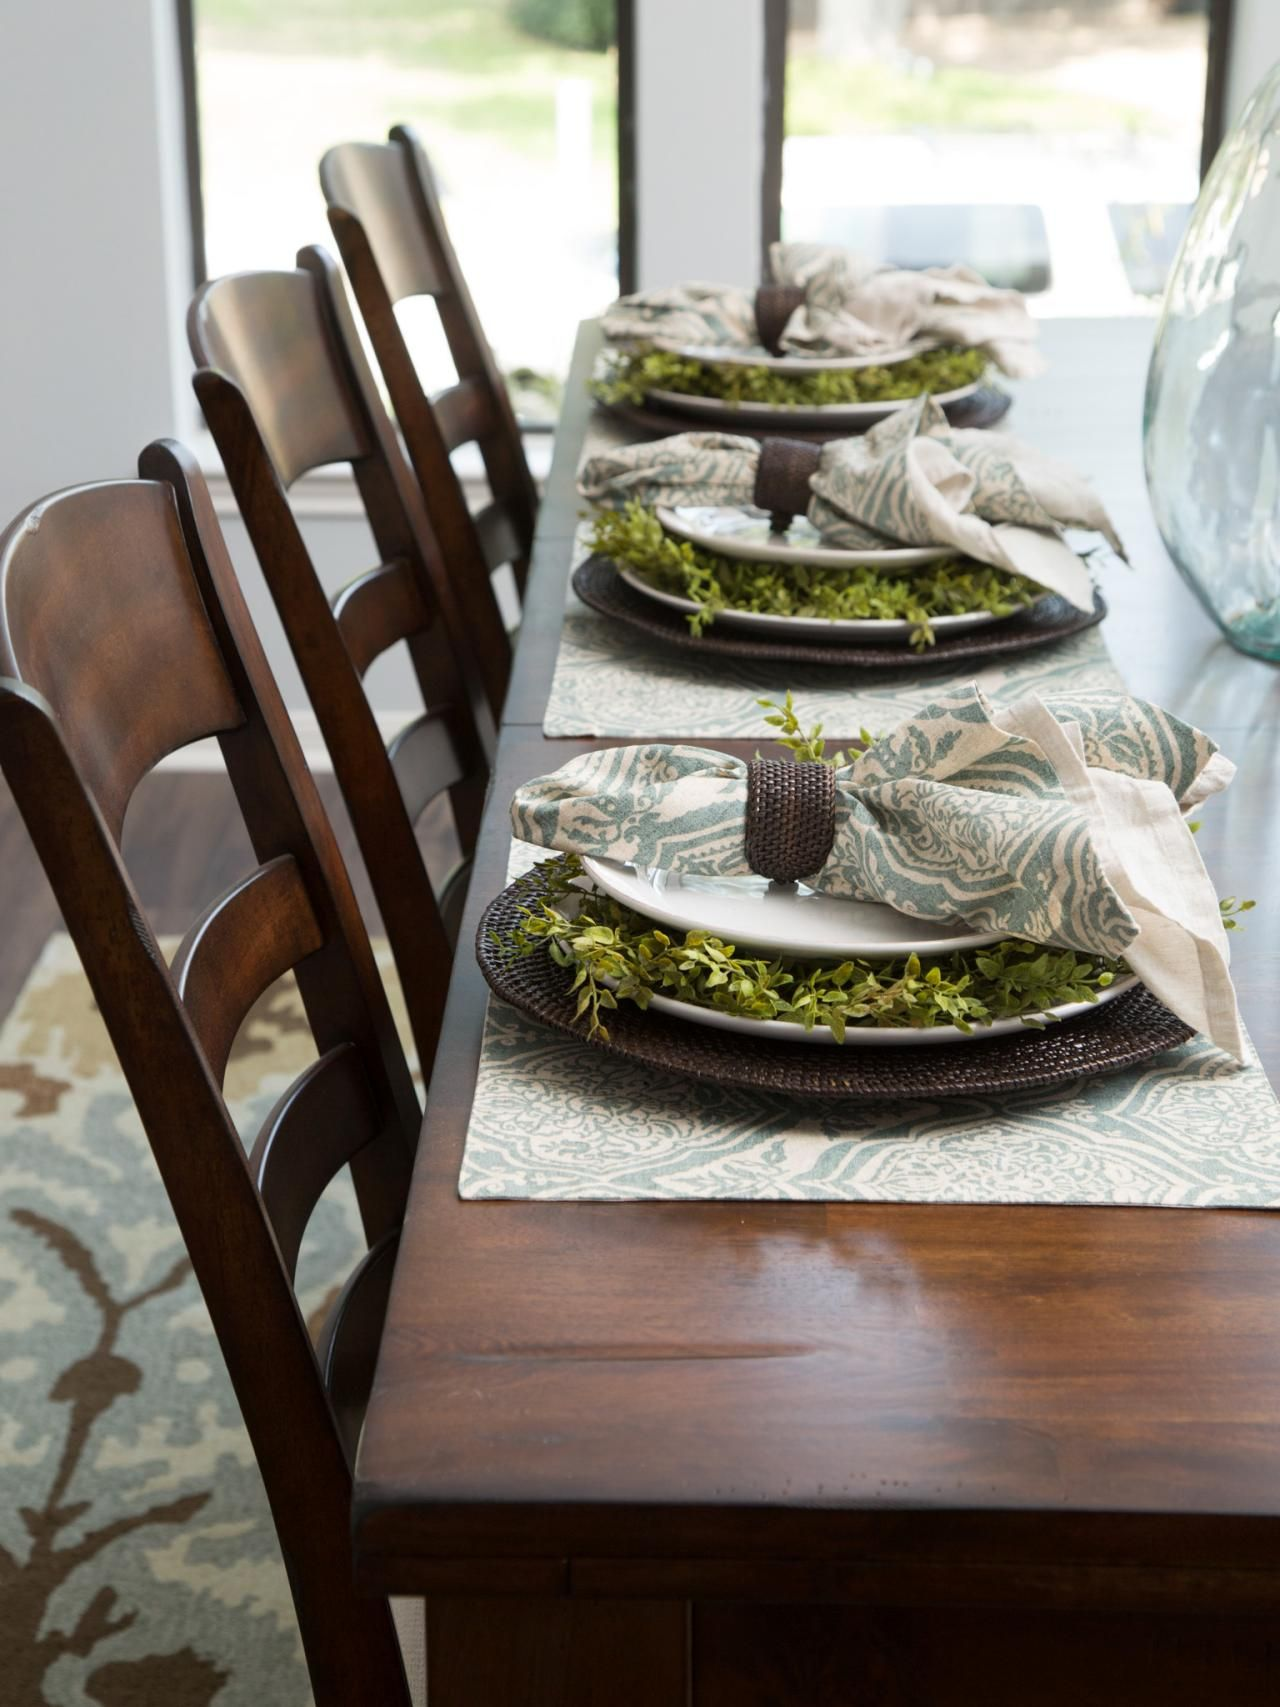 fixer upper a rush to renovate an 80s ranch home - Dining Room Table Settings